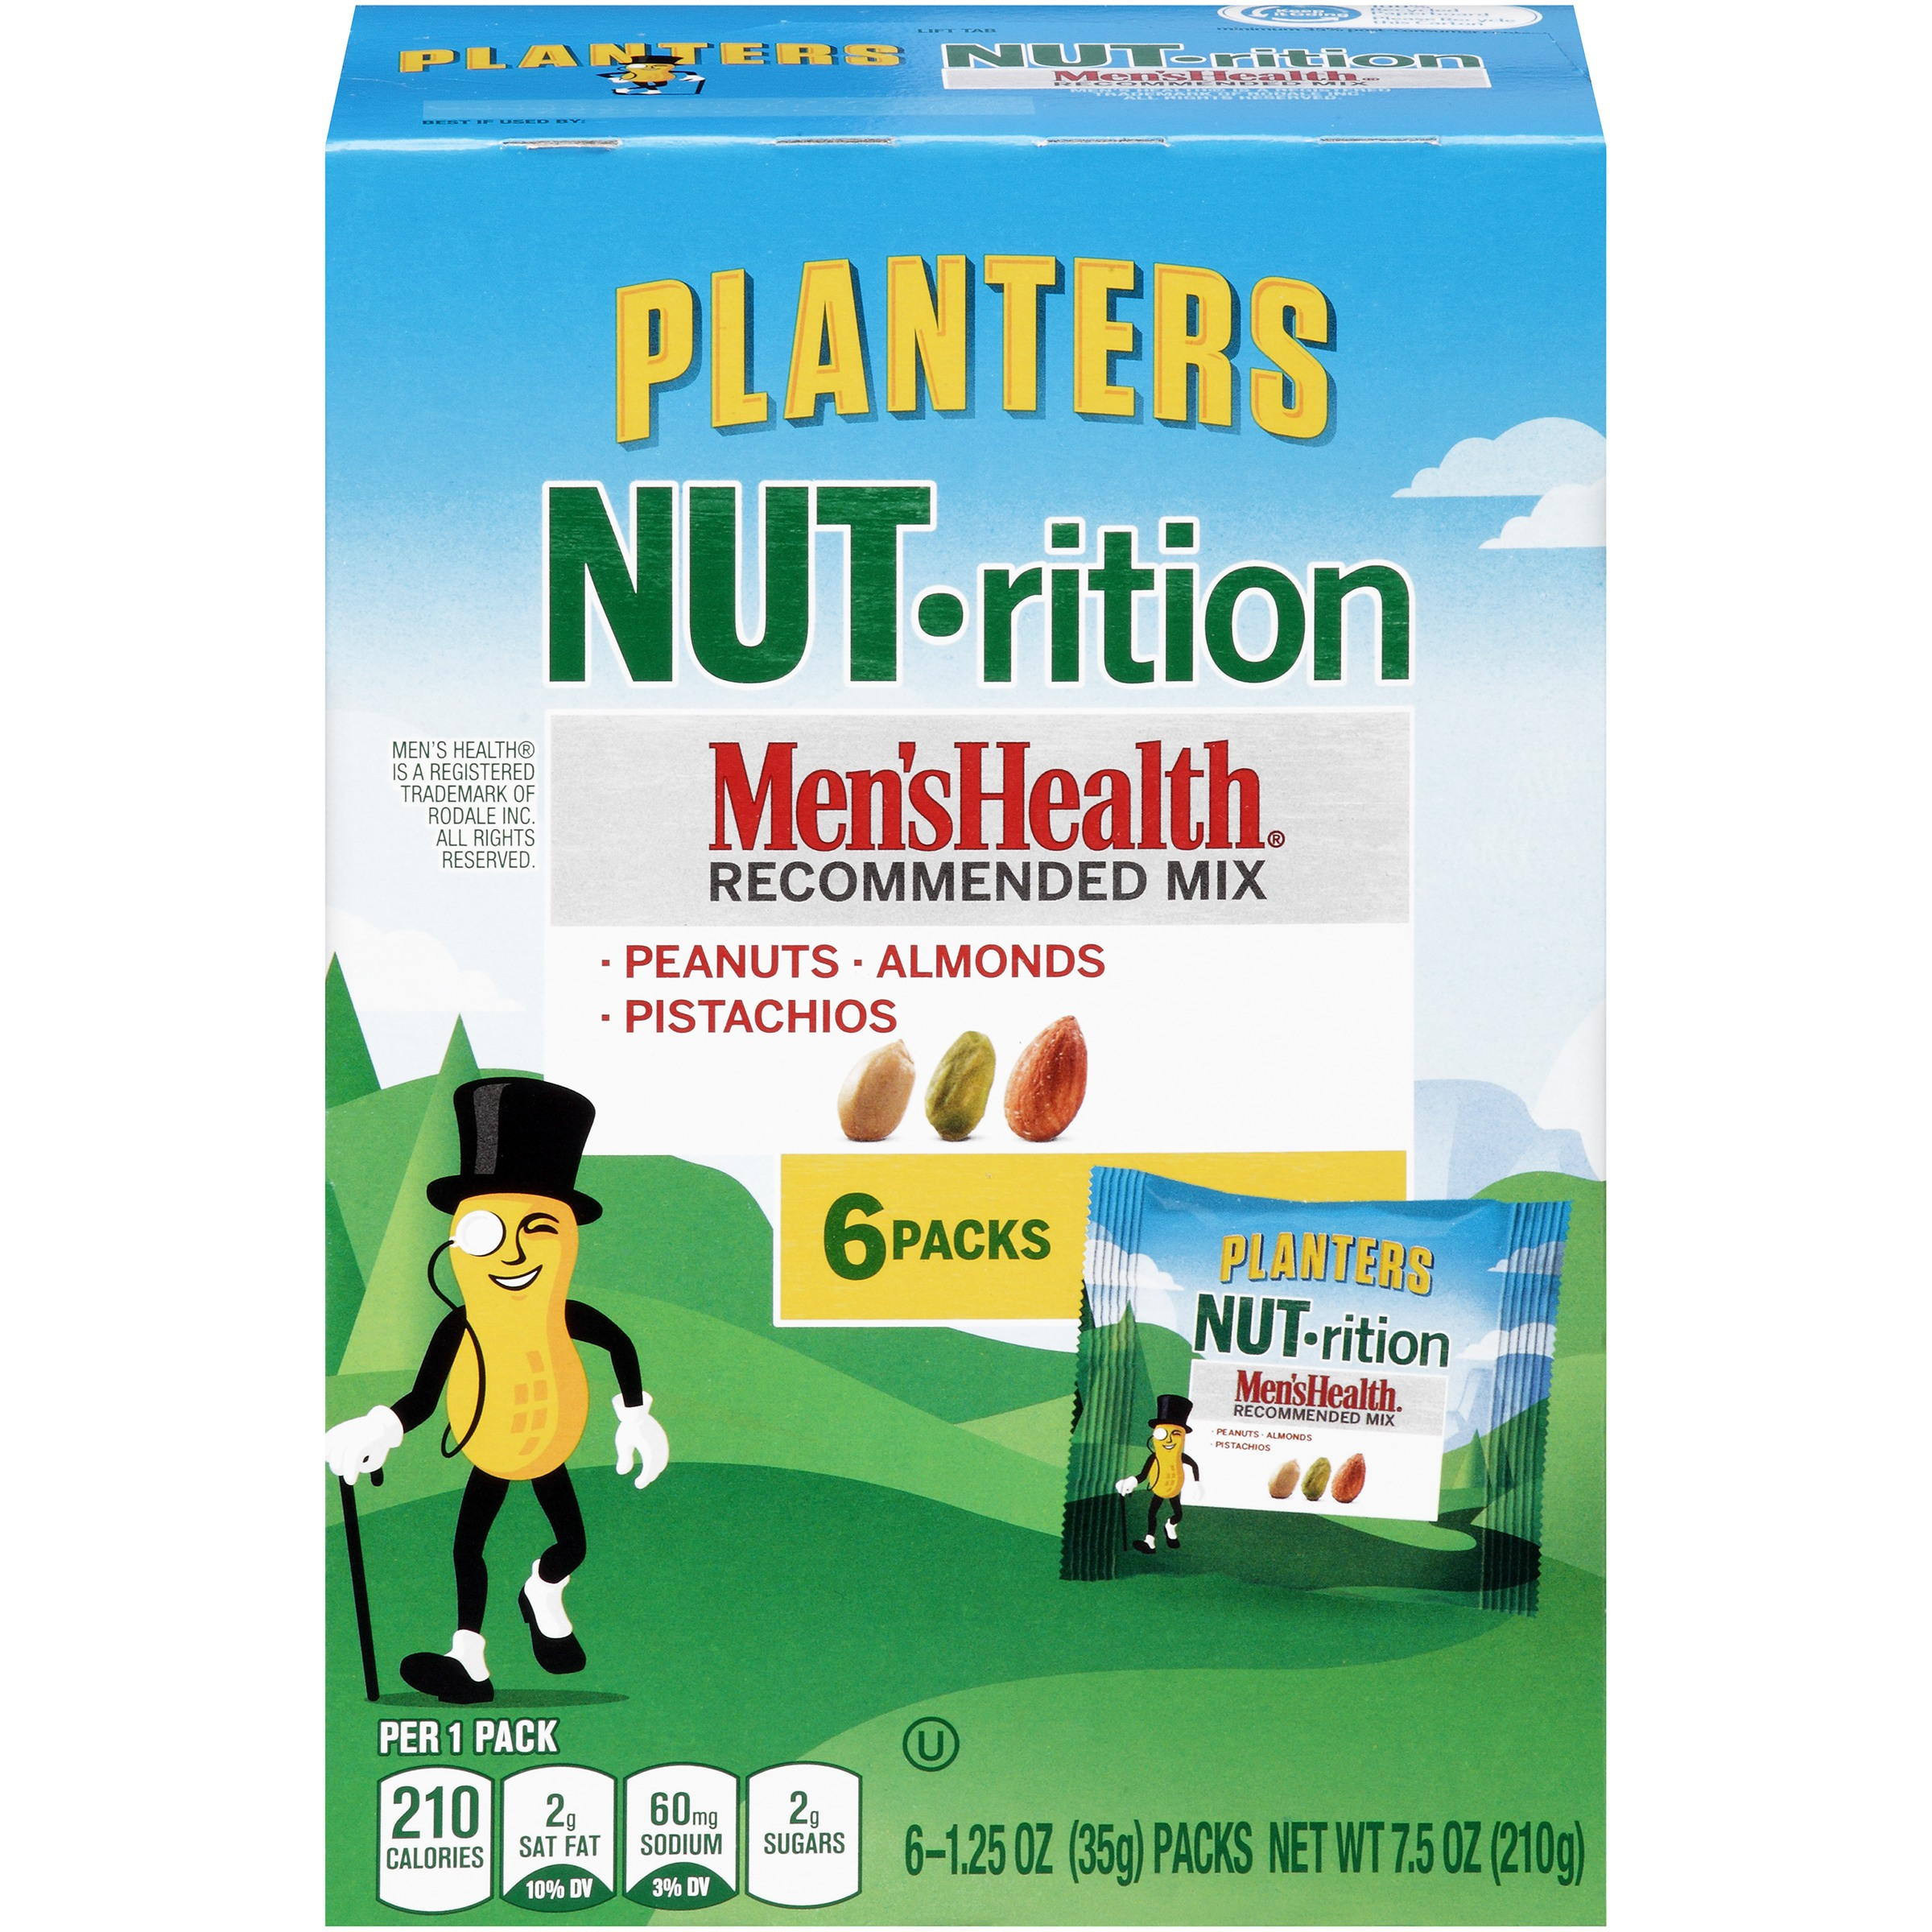 Planters NUT-rition Men's Health Recommended Mix 7 ct Box